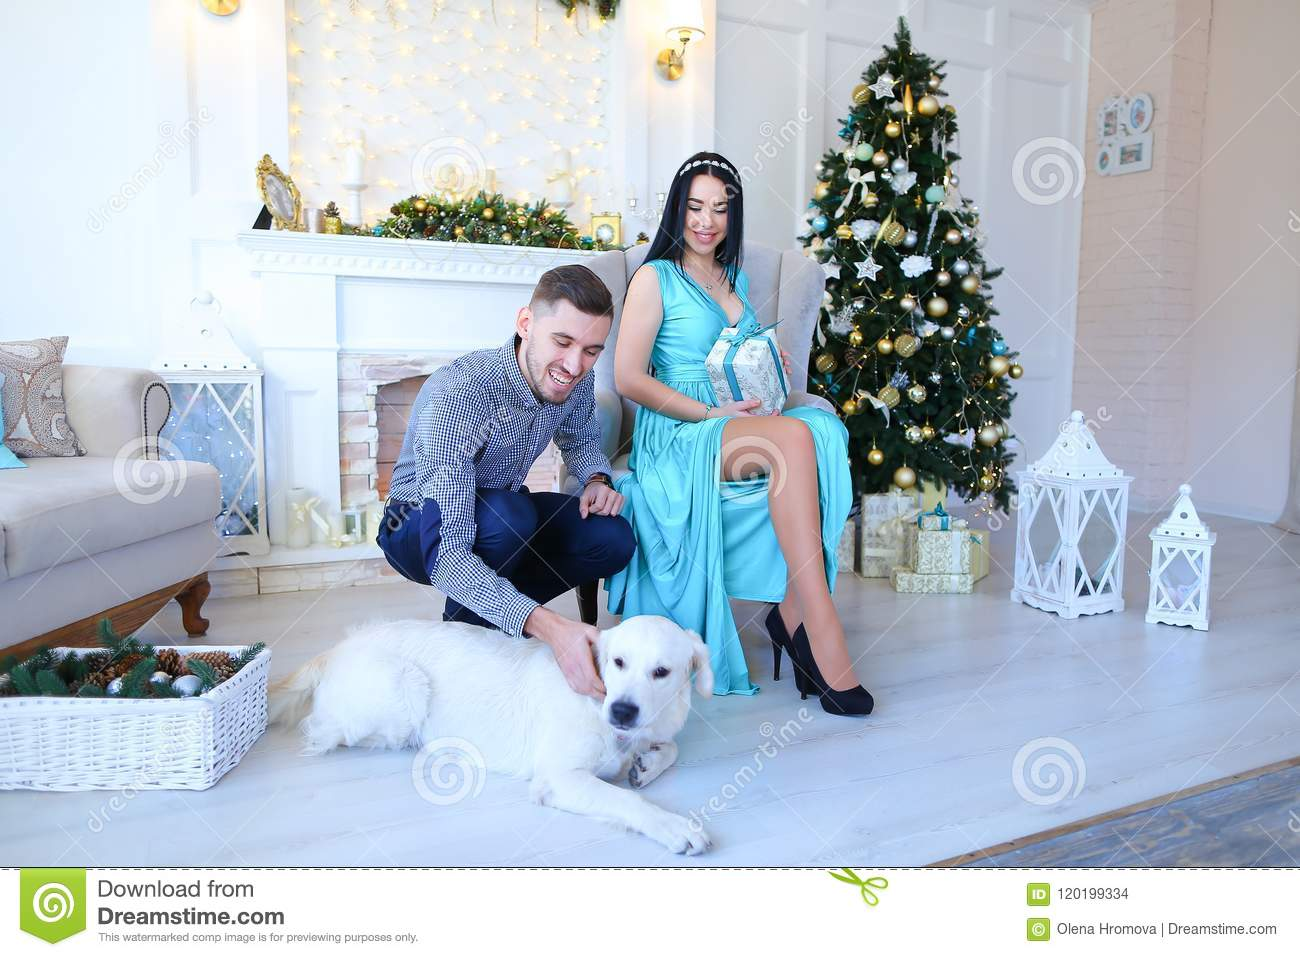 Young woman wearing blue dress and man sitting near fireplace and Christas tree, dog lying on floor.